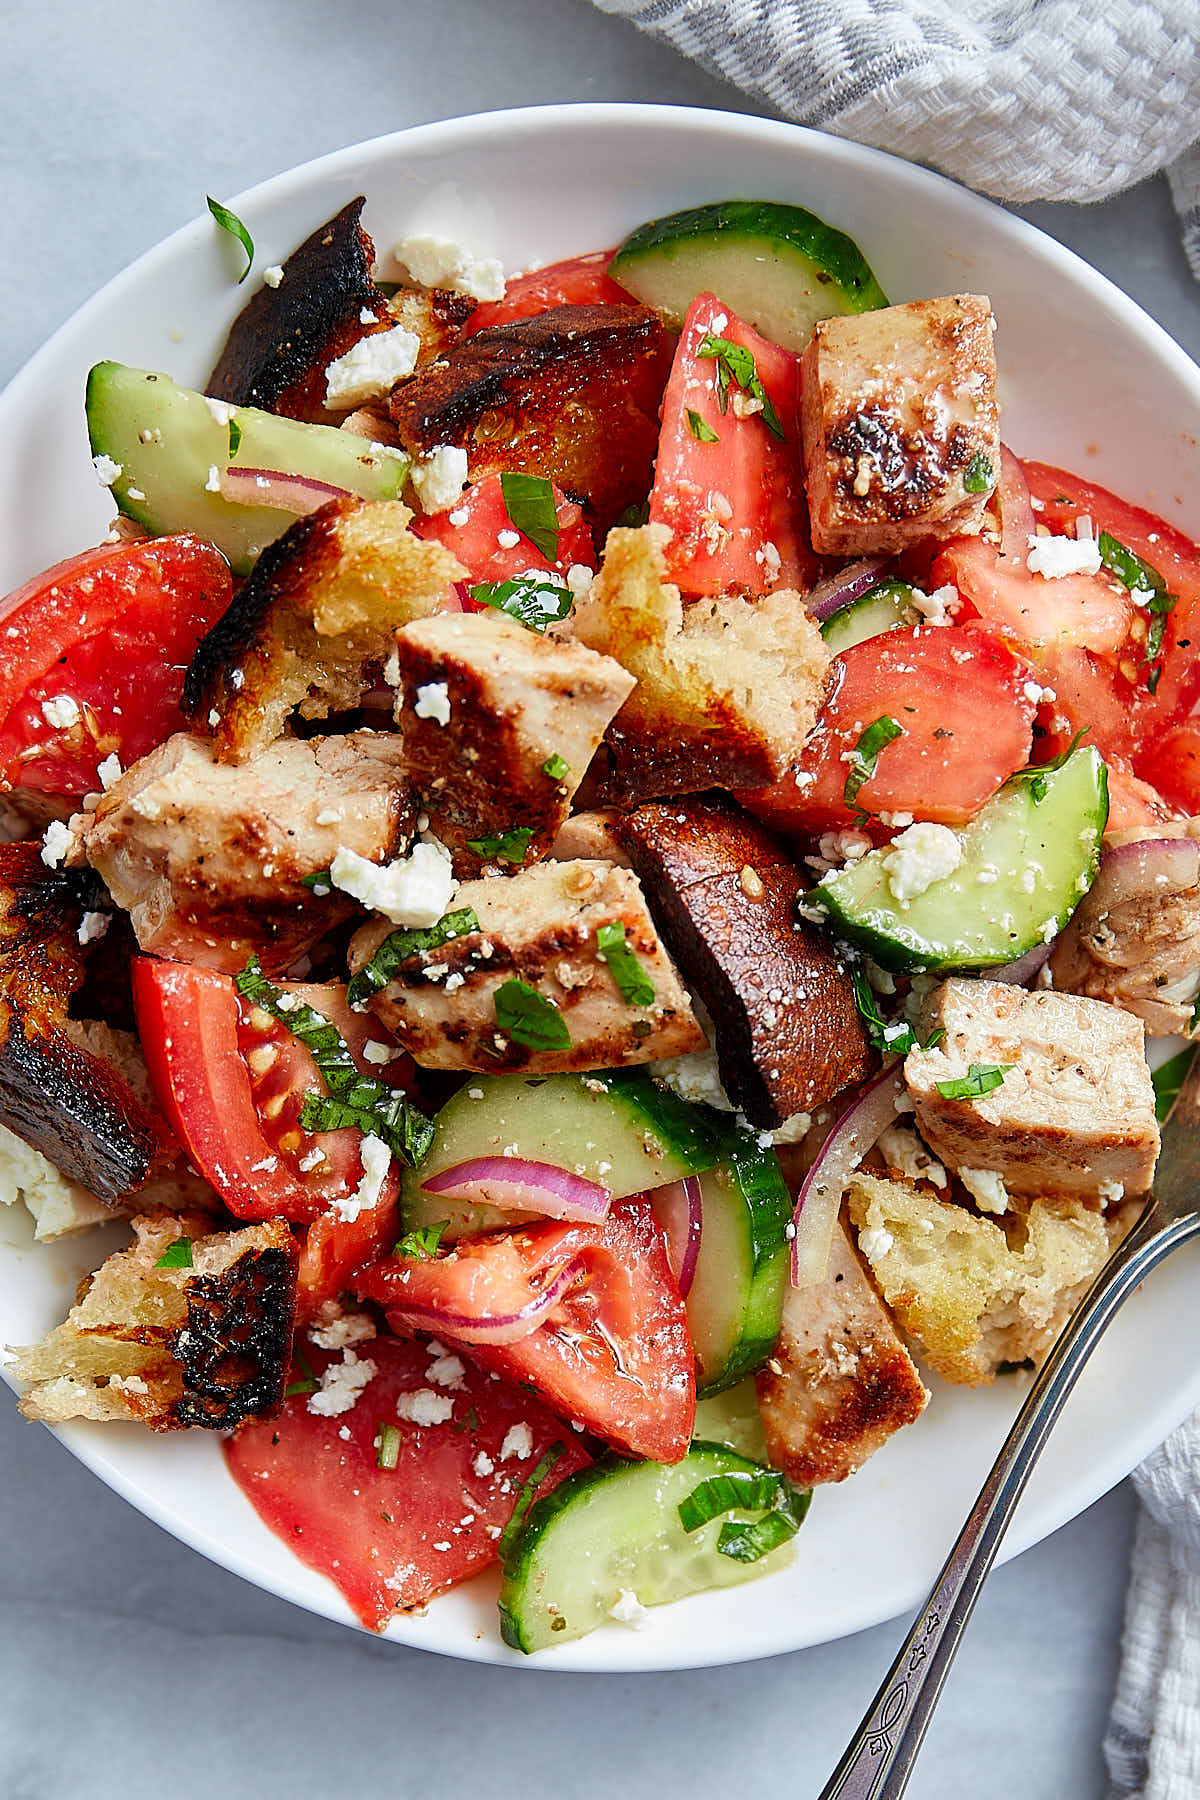 This chicken salad is made with warm pan-seared chicken breast, pieces of freshly toasted sourdough bread, vegetables and an addictive salad dressing. If you are looking for a healthy yet satisfying grilled chicken salad or pan-fried chicken salad, give this recipe a try. You will love it. | ifoodblogger.com